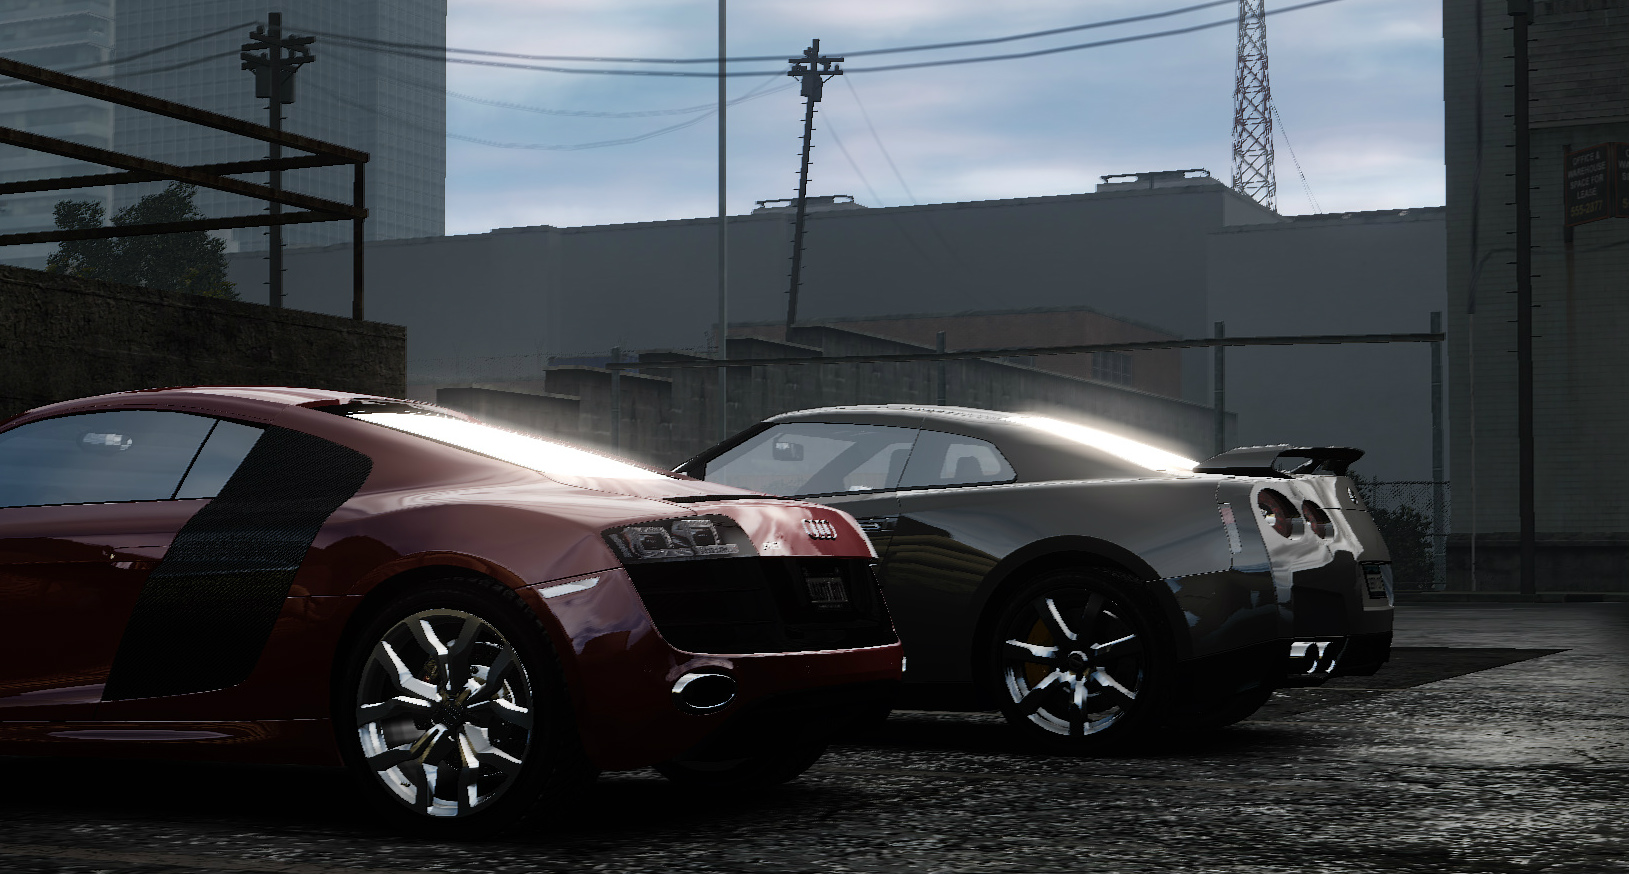 new_GTAIV 2013-05-03 22-02-17-240